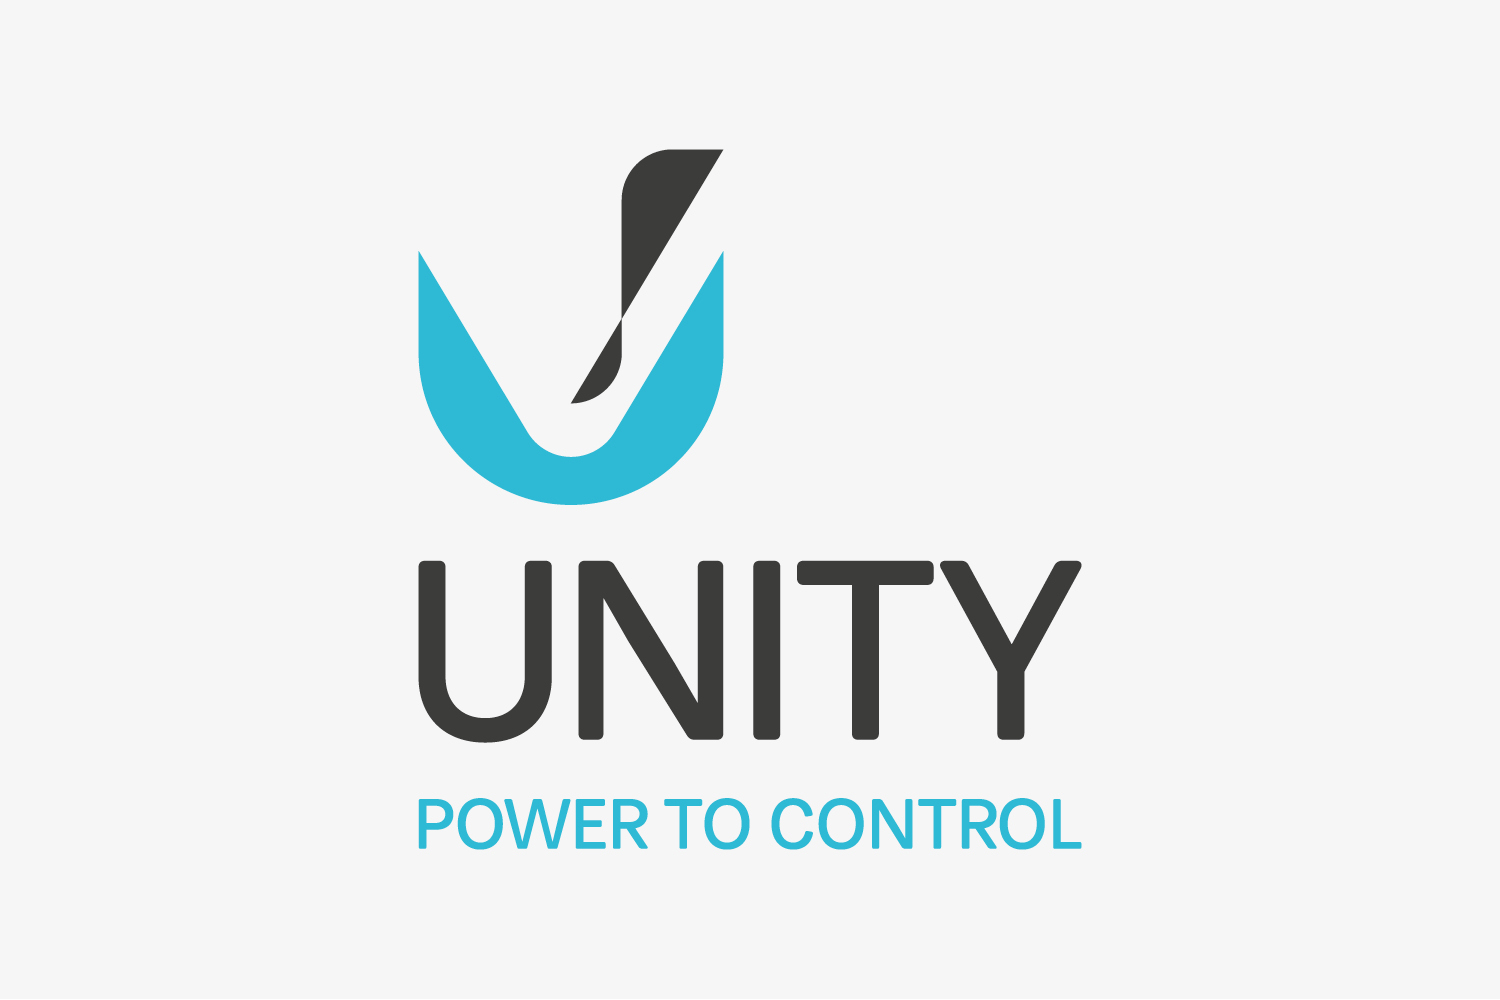 Unity industrial dimming systems.